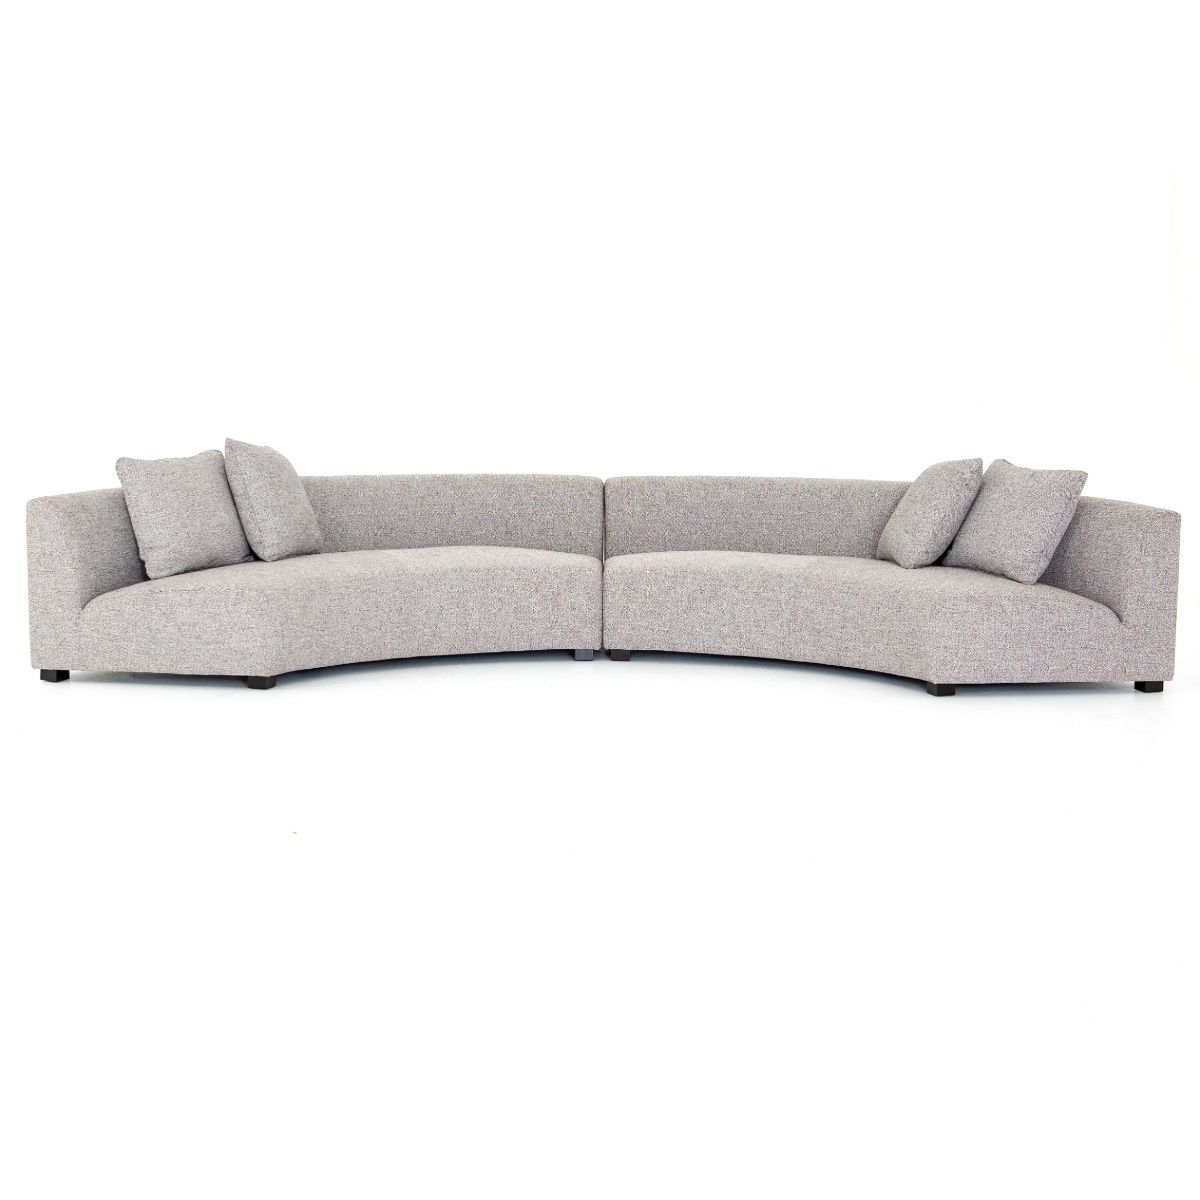 Liam Modern Grey 2 Piece Curved Sectional Sofa Curved Sectional